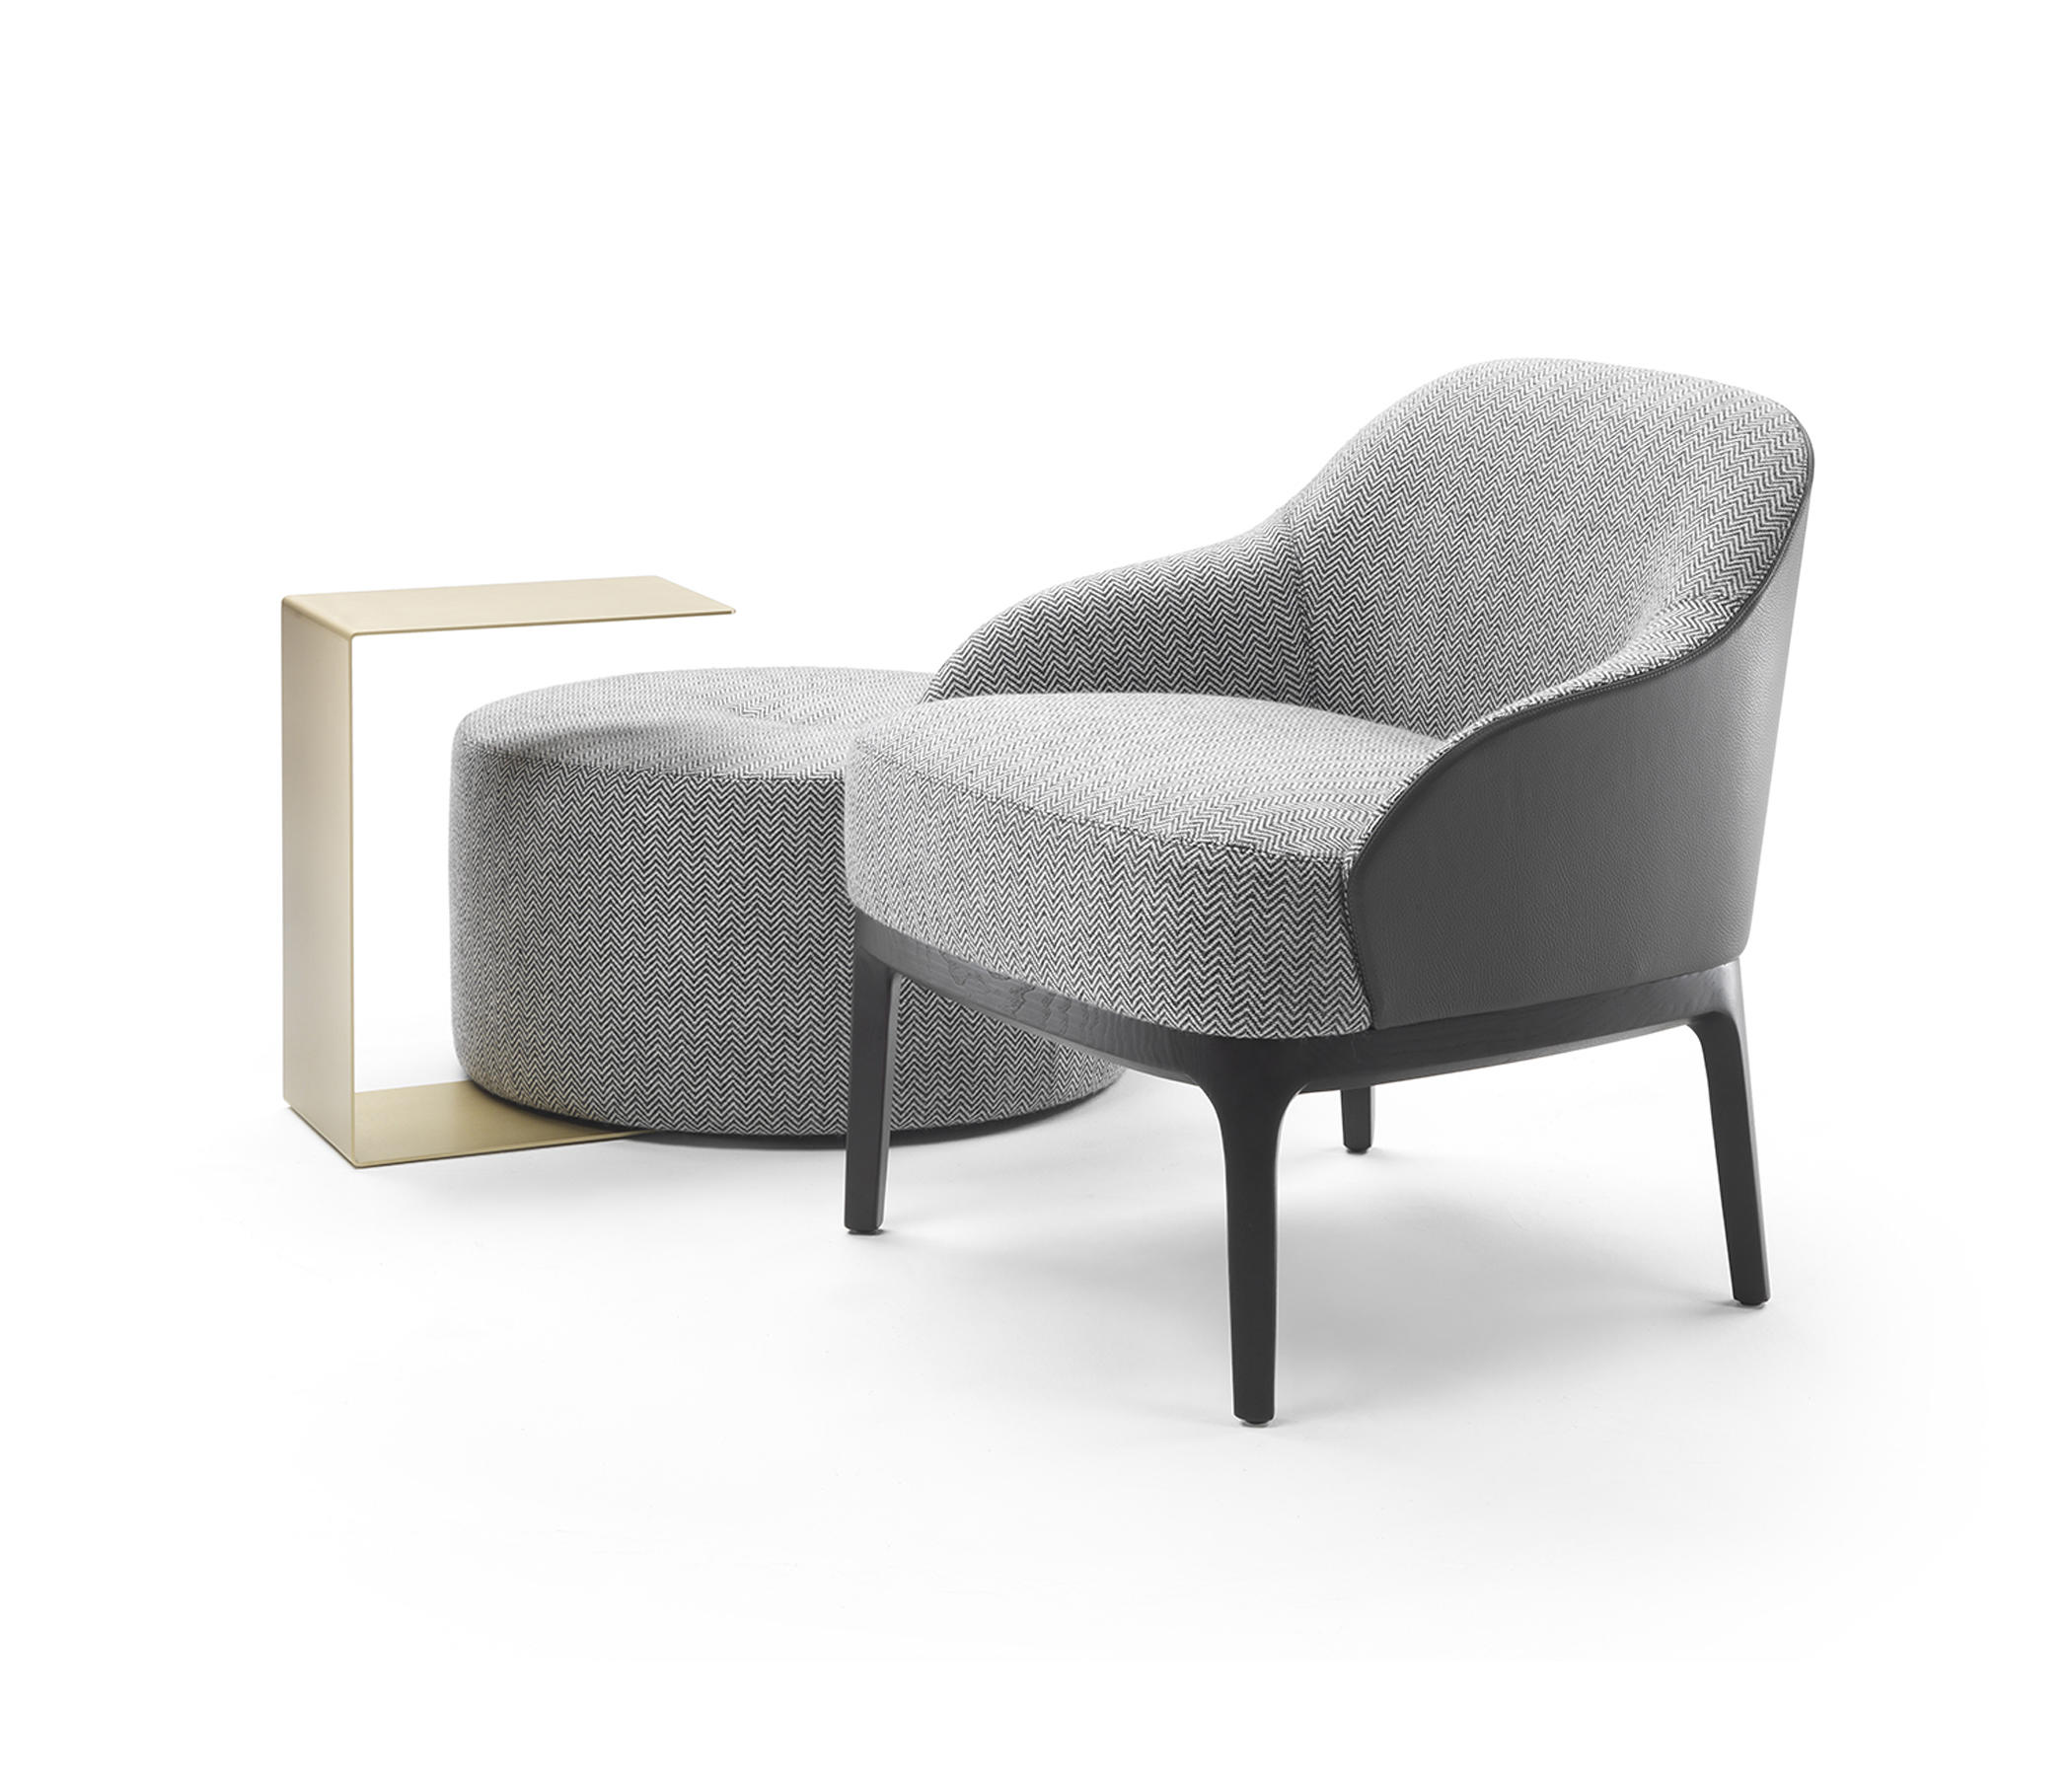 Mini Side Table By Marelli | Side Tables